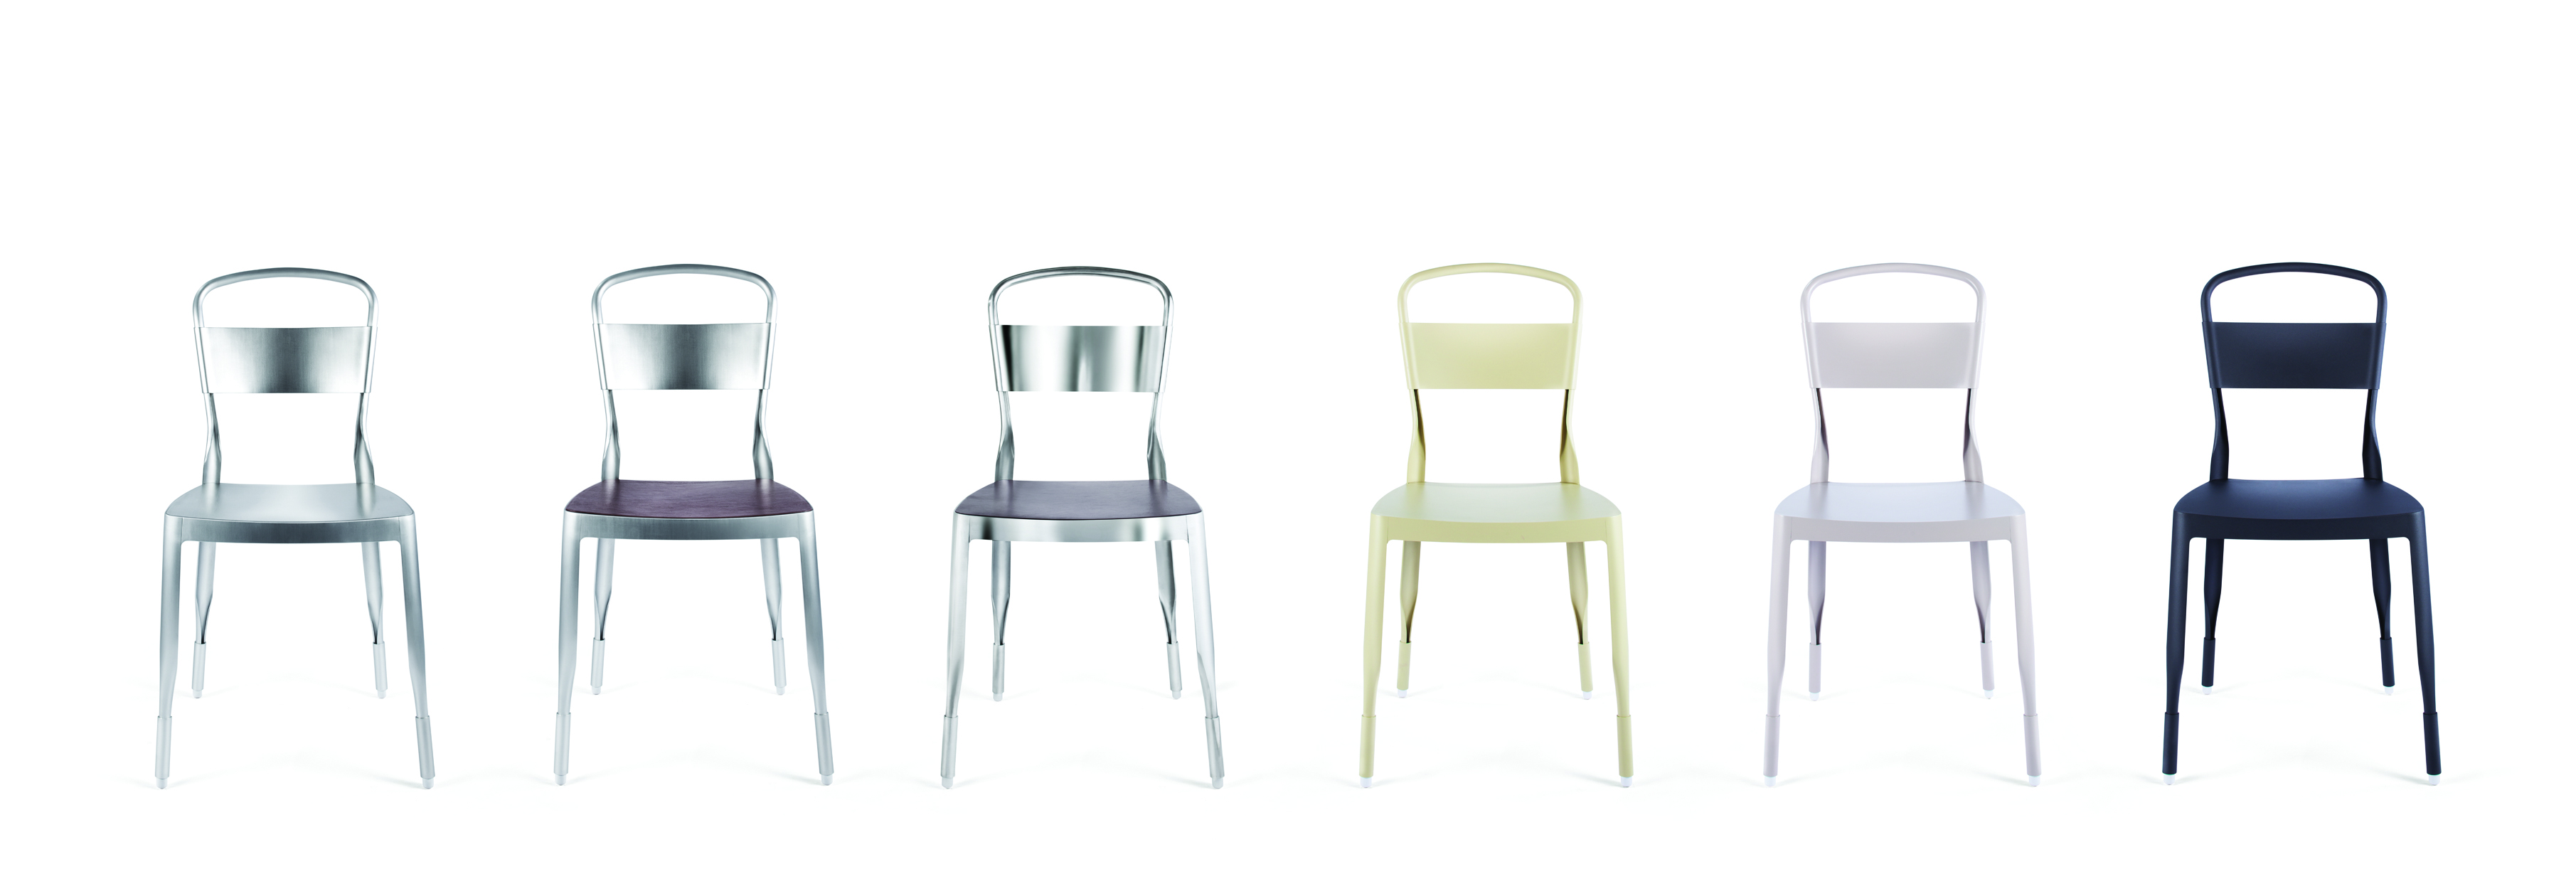 EOQ-Chair 4A Group